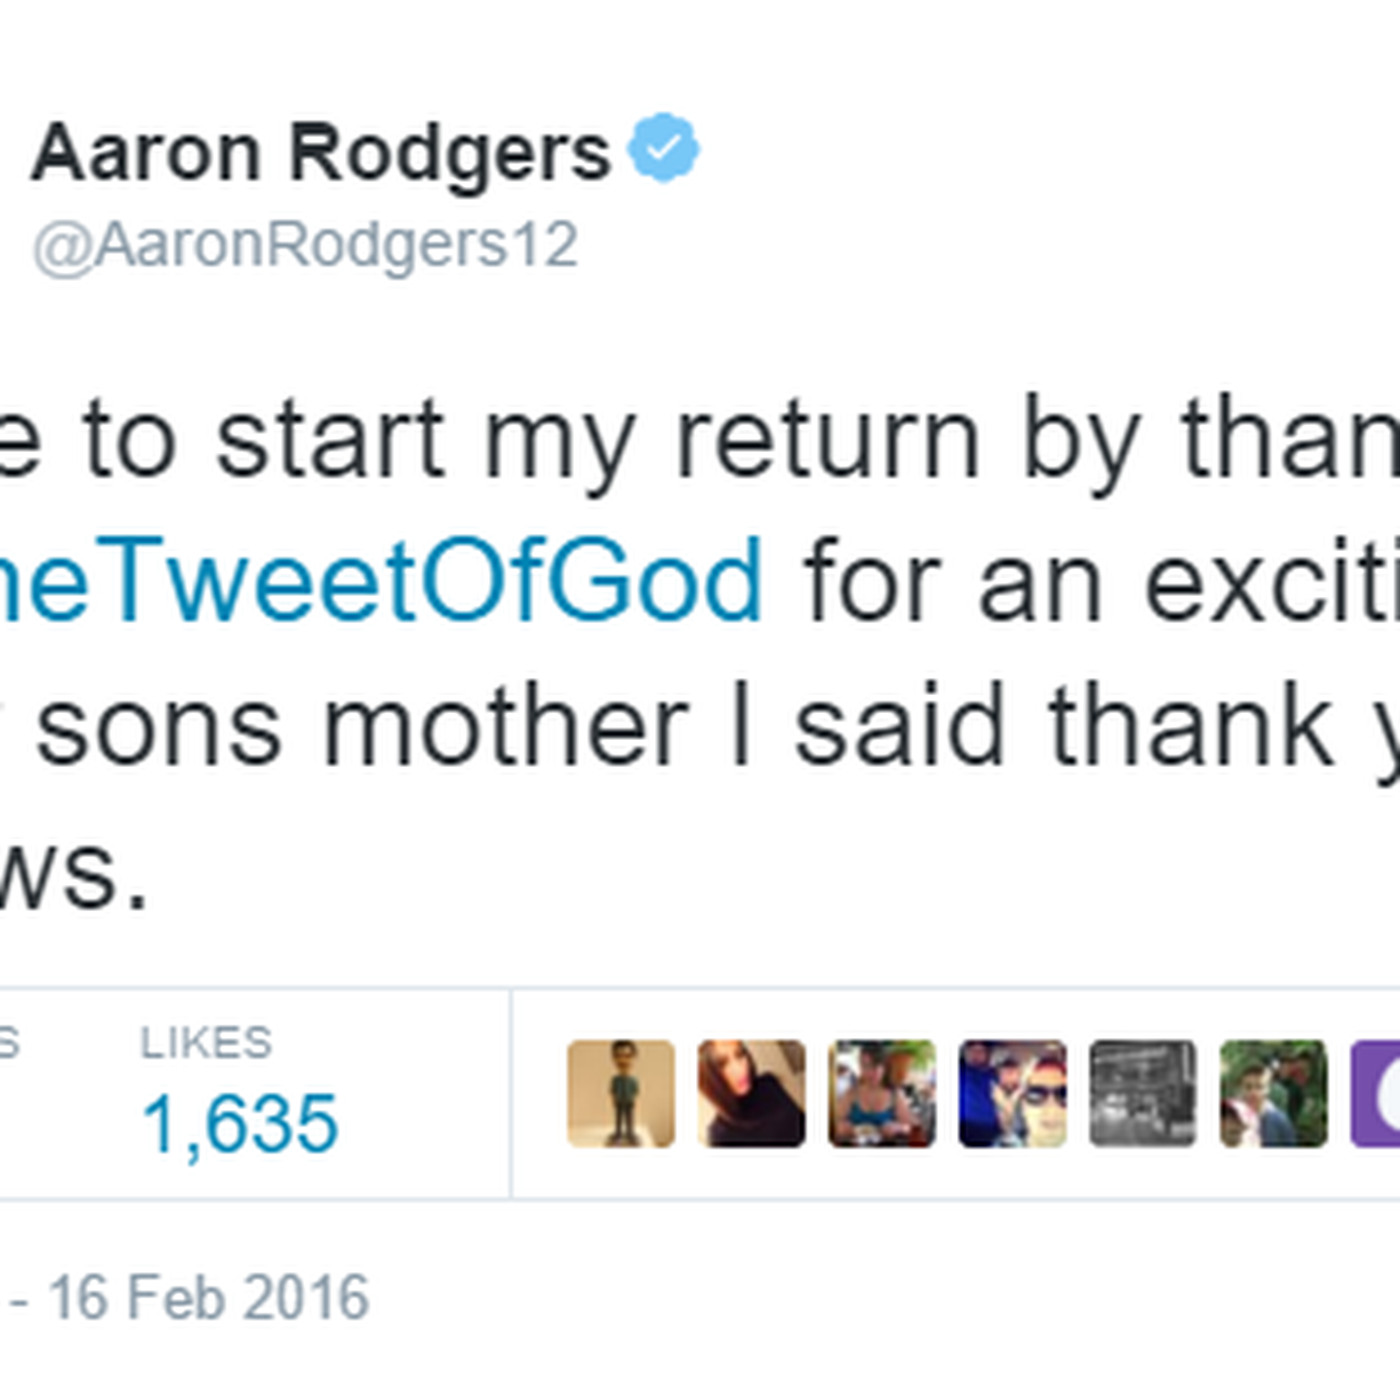 Garfield Porn aaron rodgers inadvertently links to garfield porn while